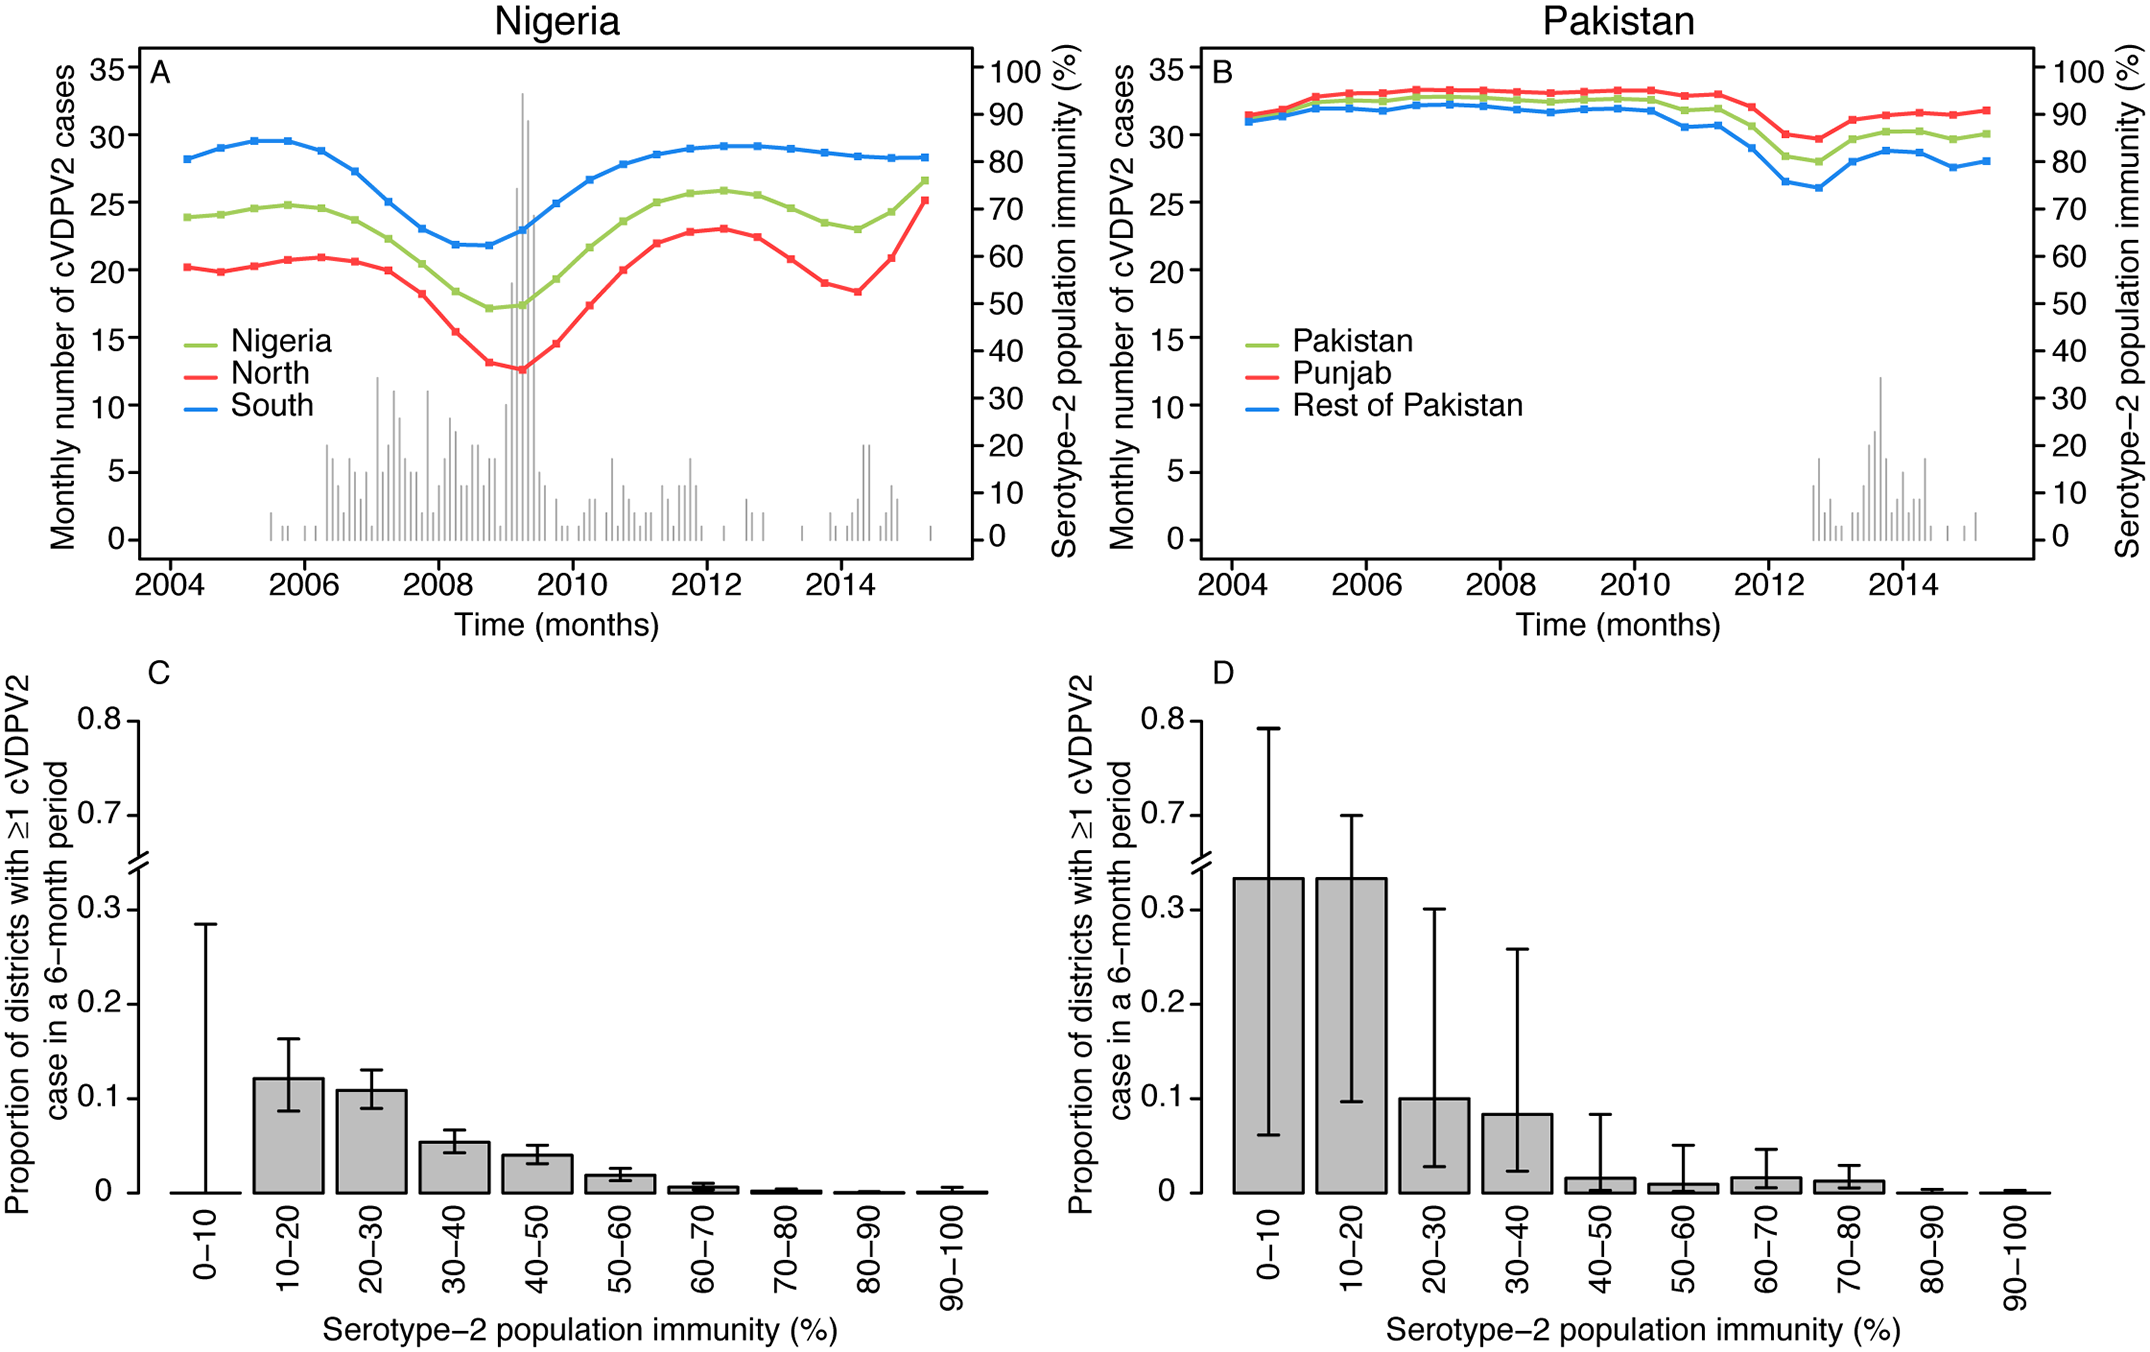 Spatio-temporal correlation between serotype-2 population immunity and the occurrence of cVDPV2 cases.